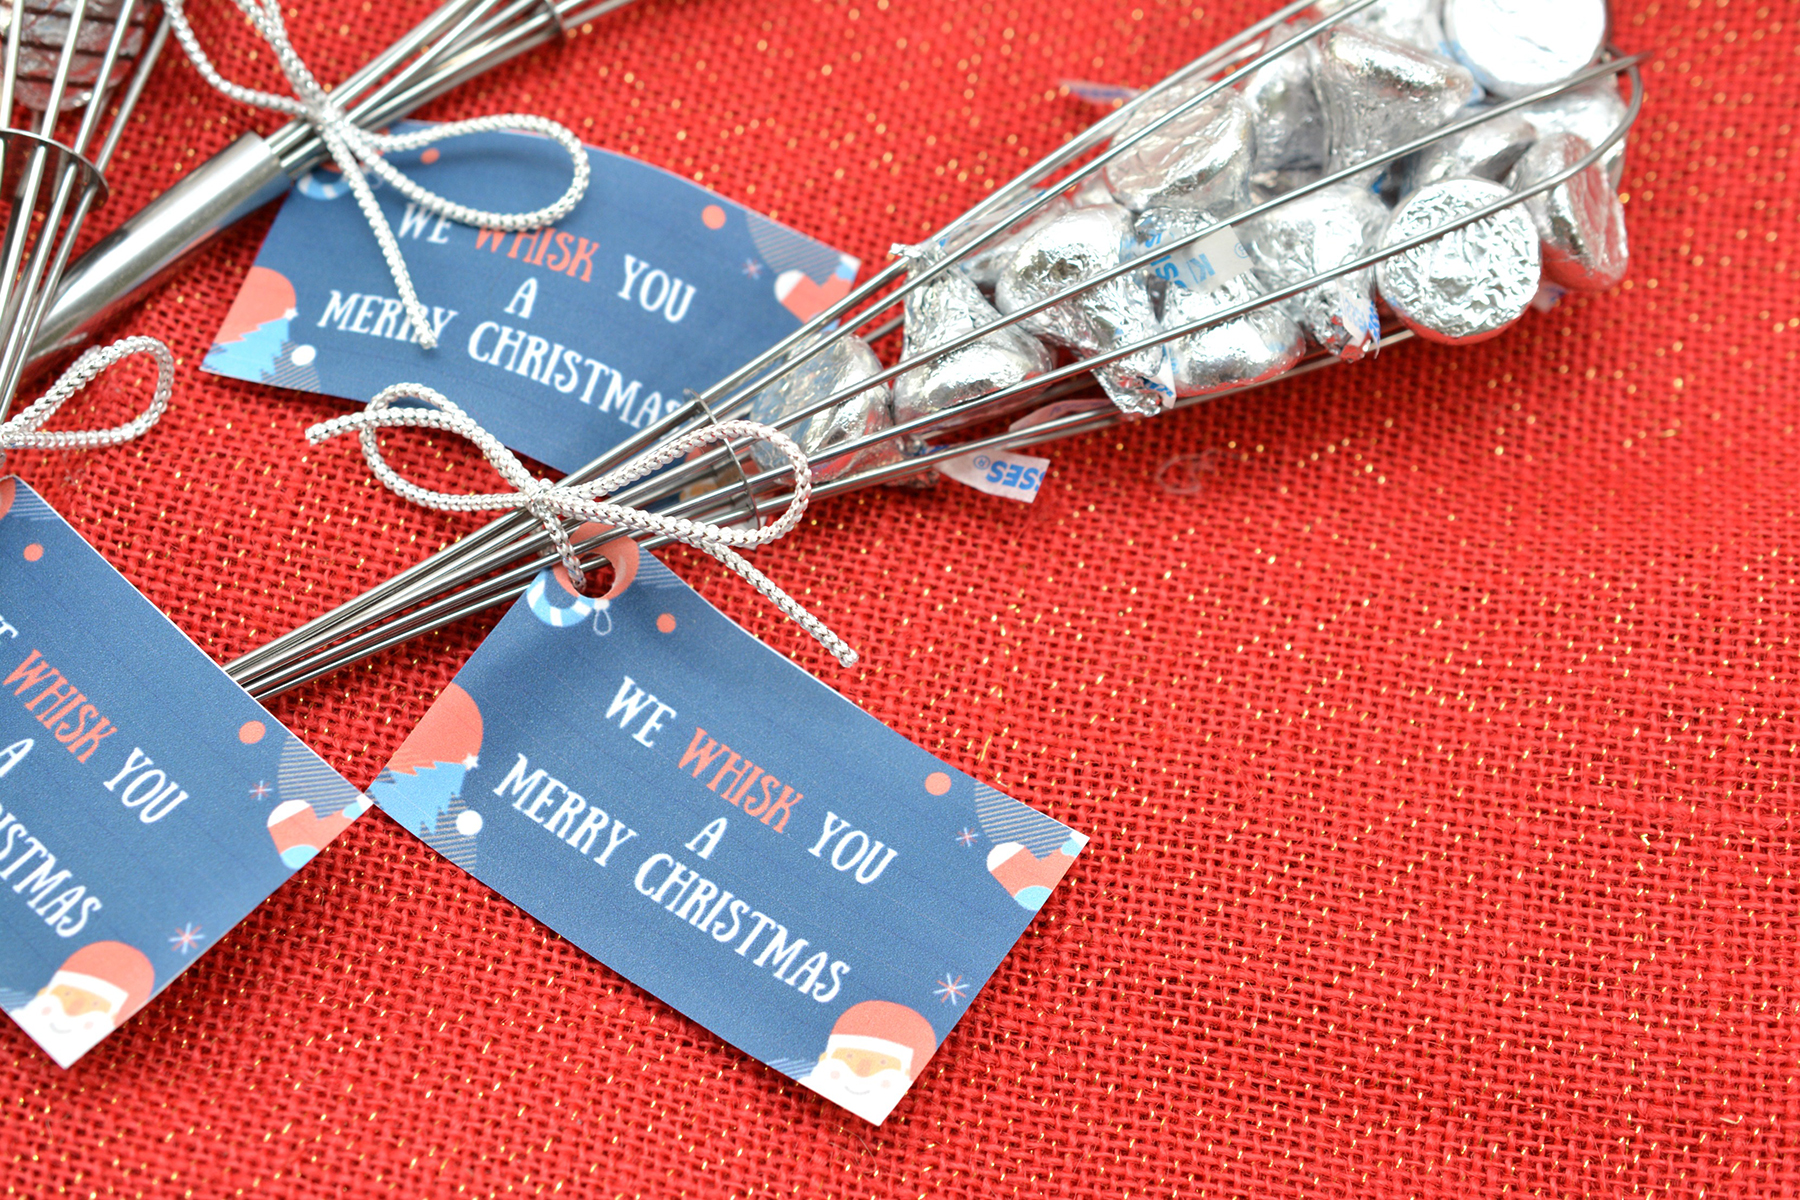 DIY Christmas Gift: We Whisk You A Merry Christmas